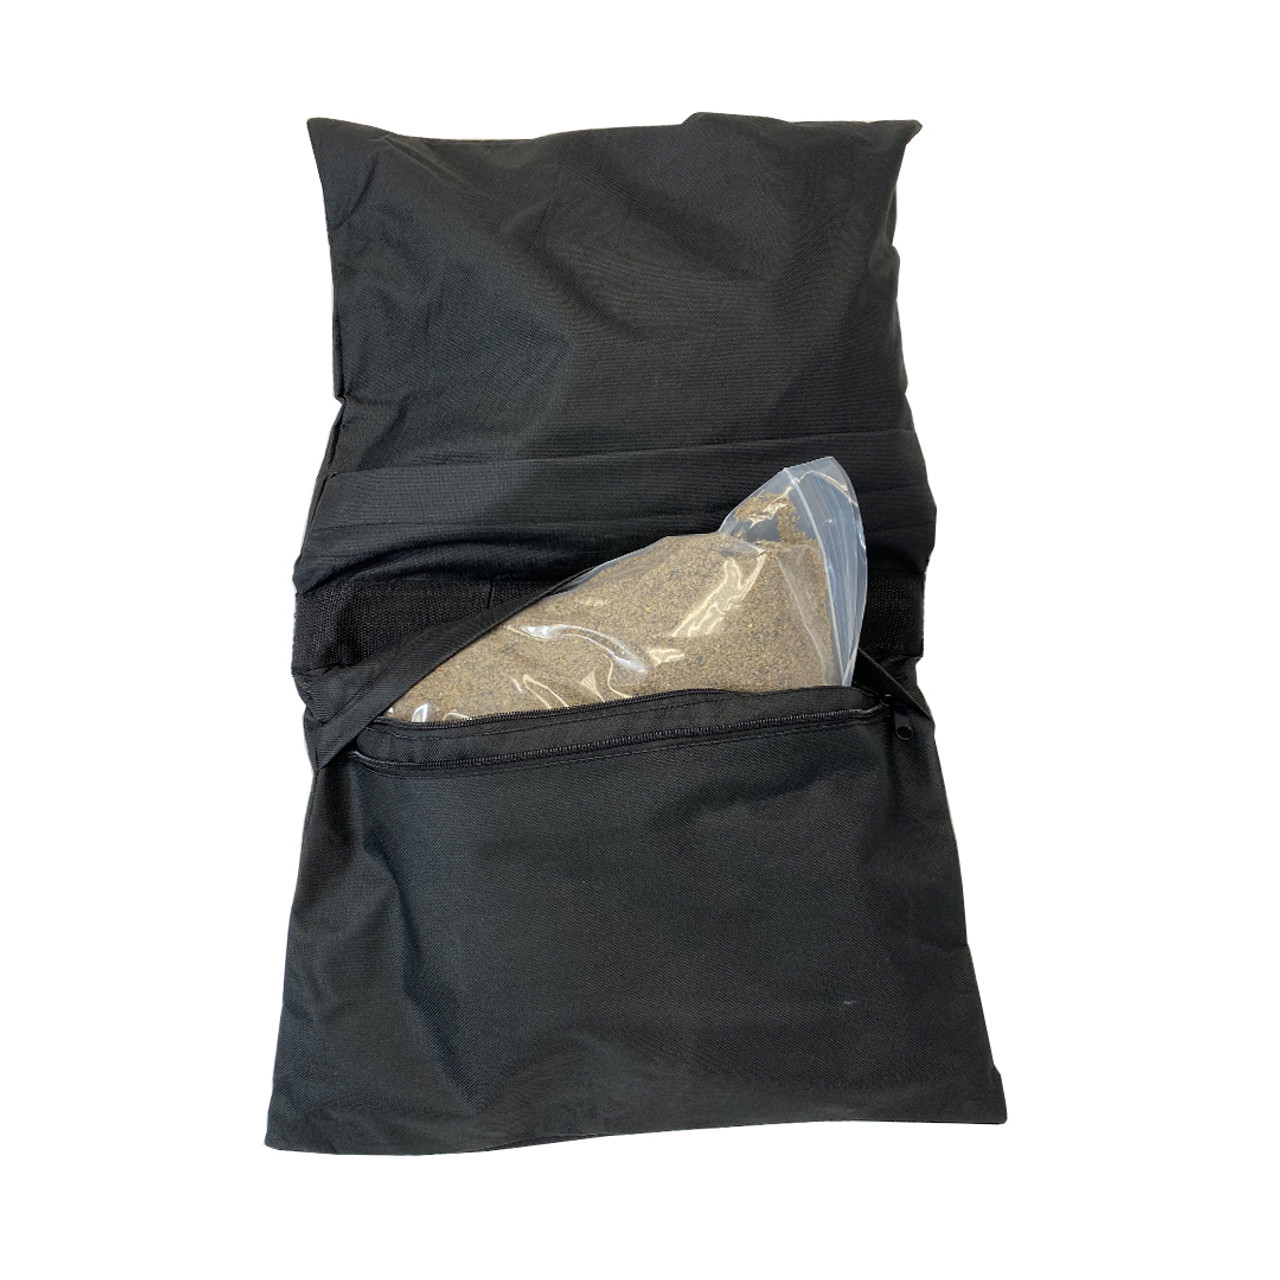 Saddlebag style sandbag is intended to be used anywhere weights are required as additional weight on pipe and drape or truss bases and more- with Plastic bag with sand